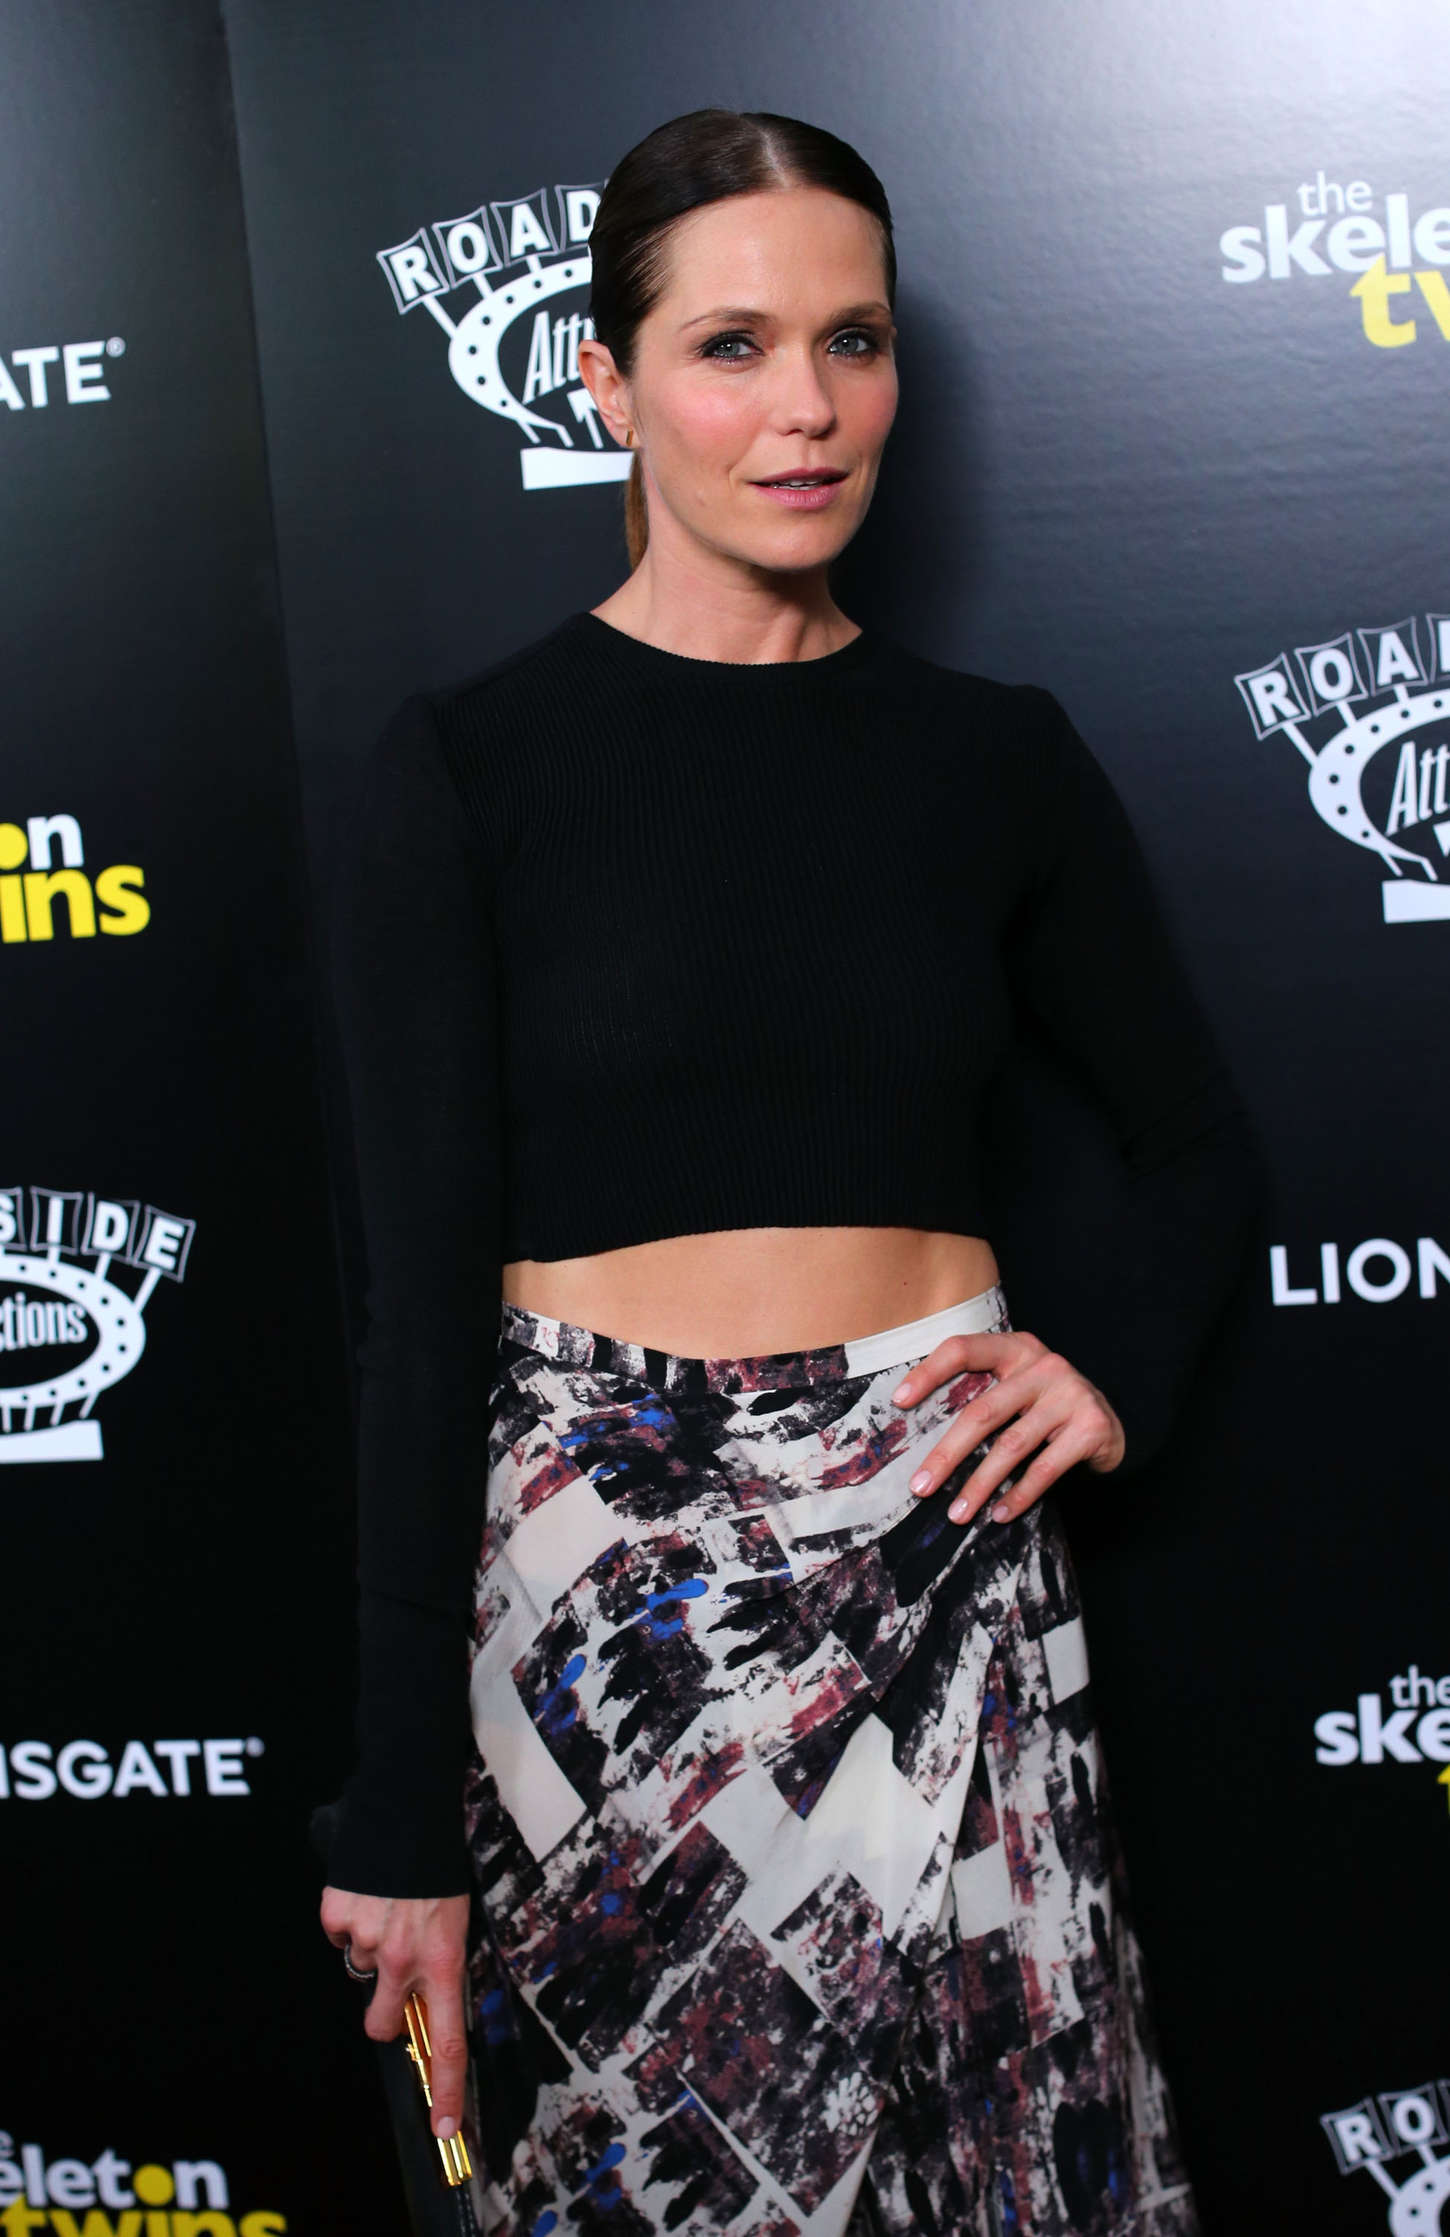 Katie Aselton The Skeleton Twins Premiere in Hollywood